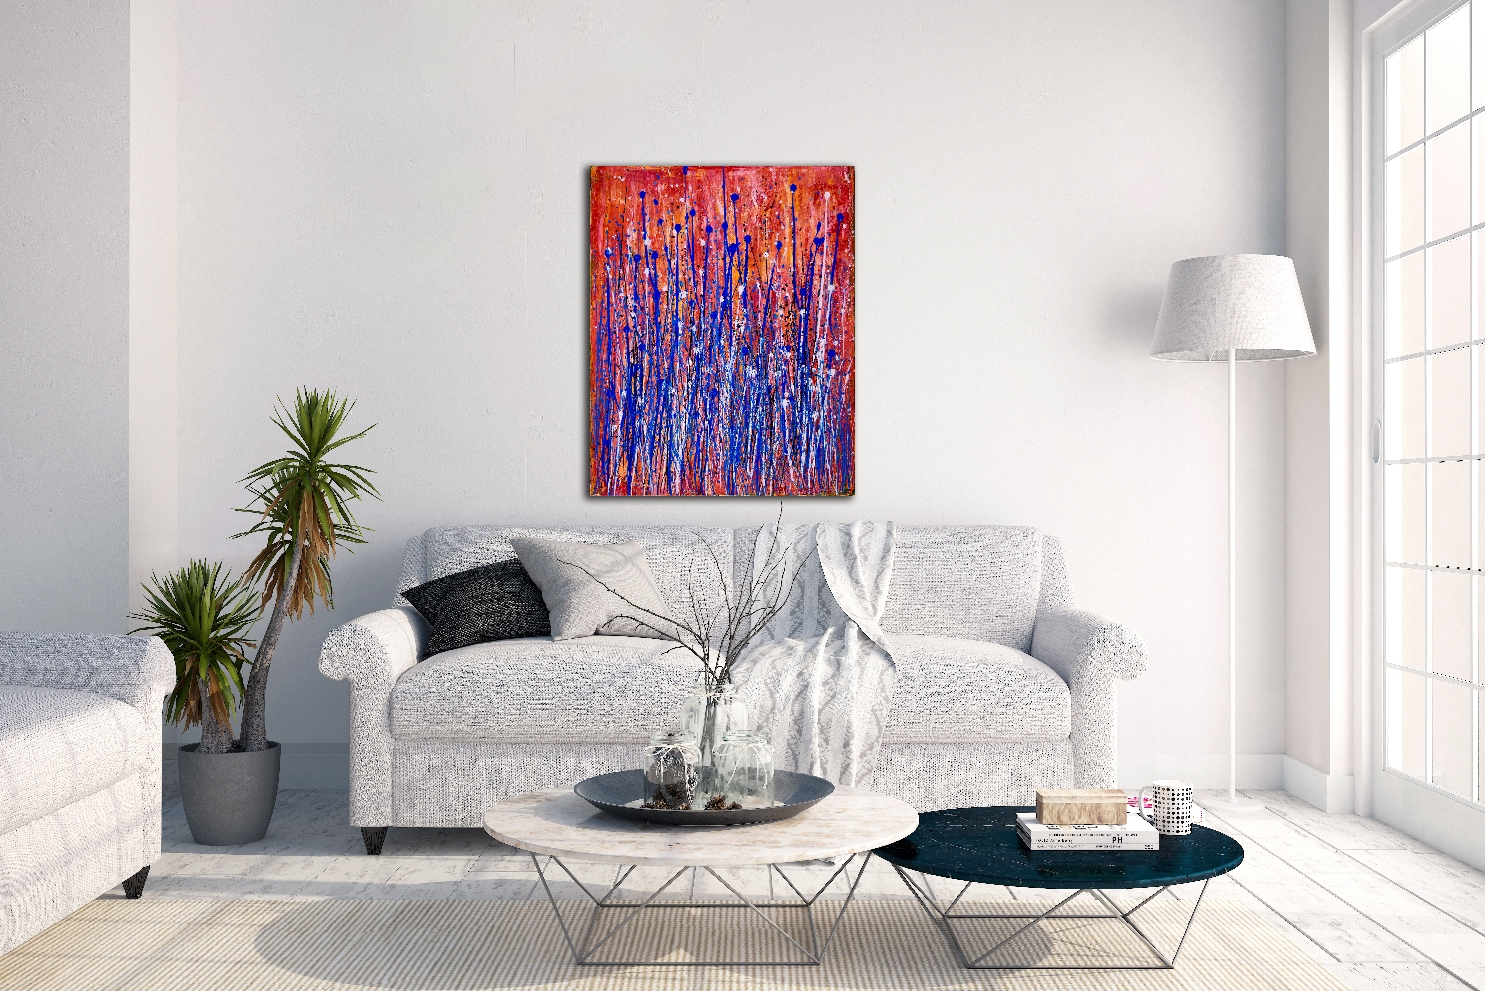 Drizzles 3 (Cooling) - SOLD by artist Nestor Toro